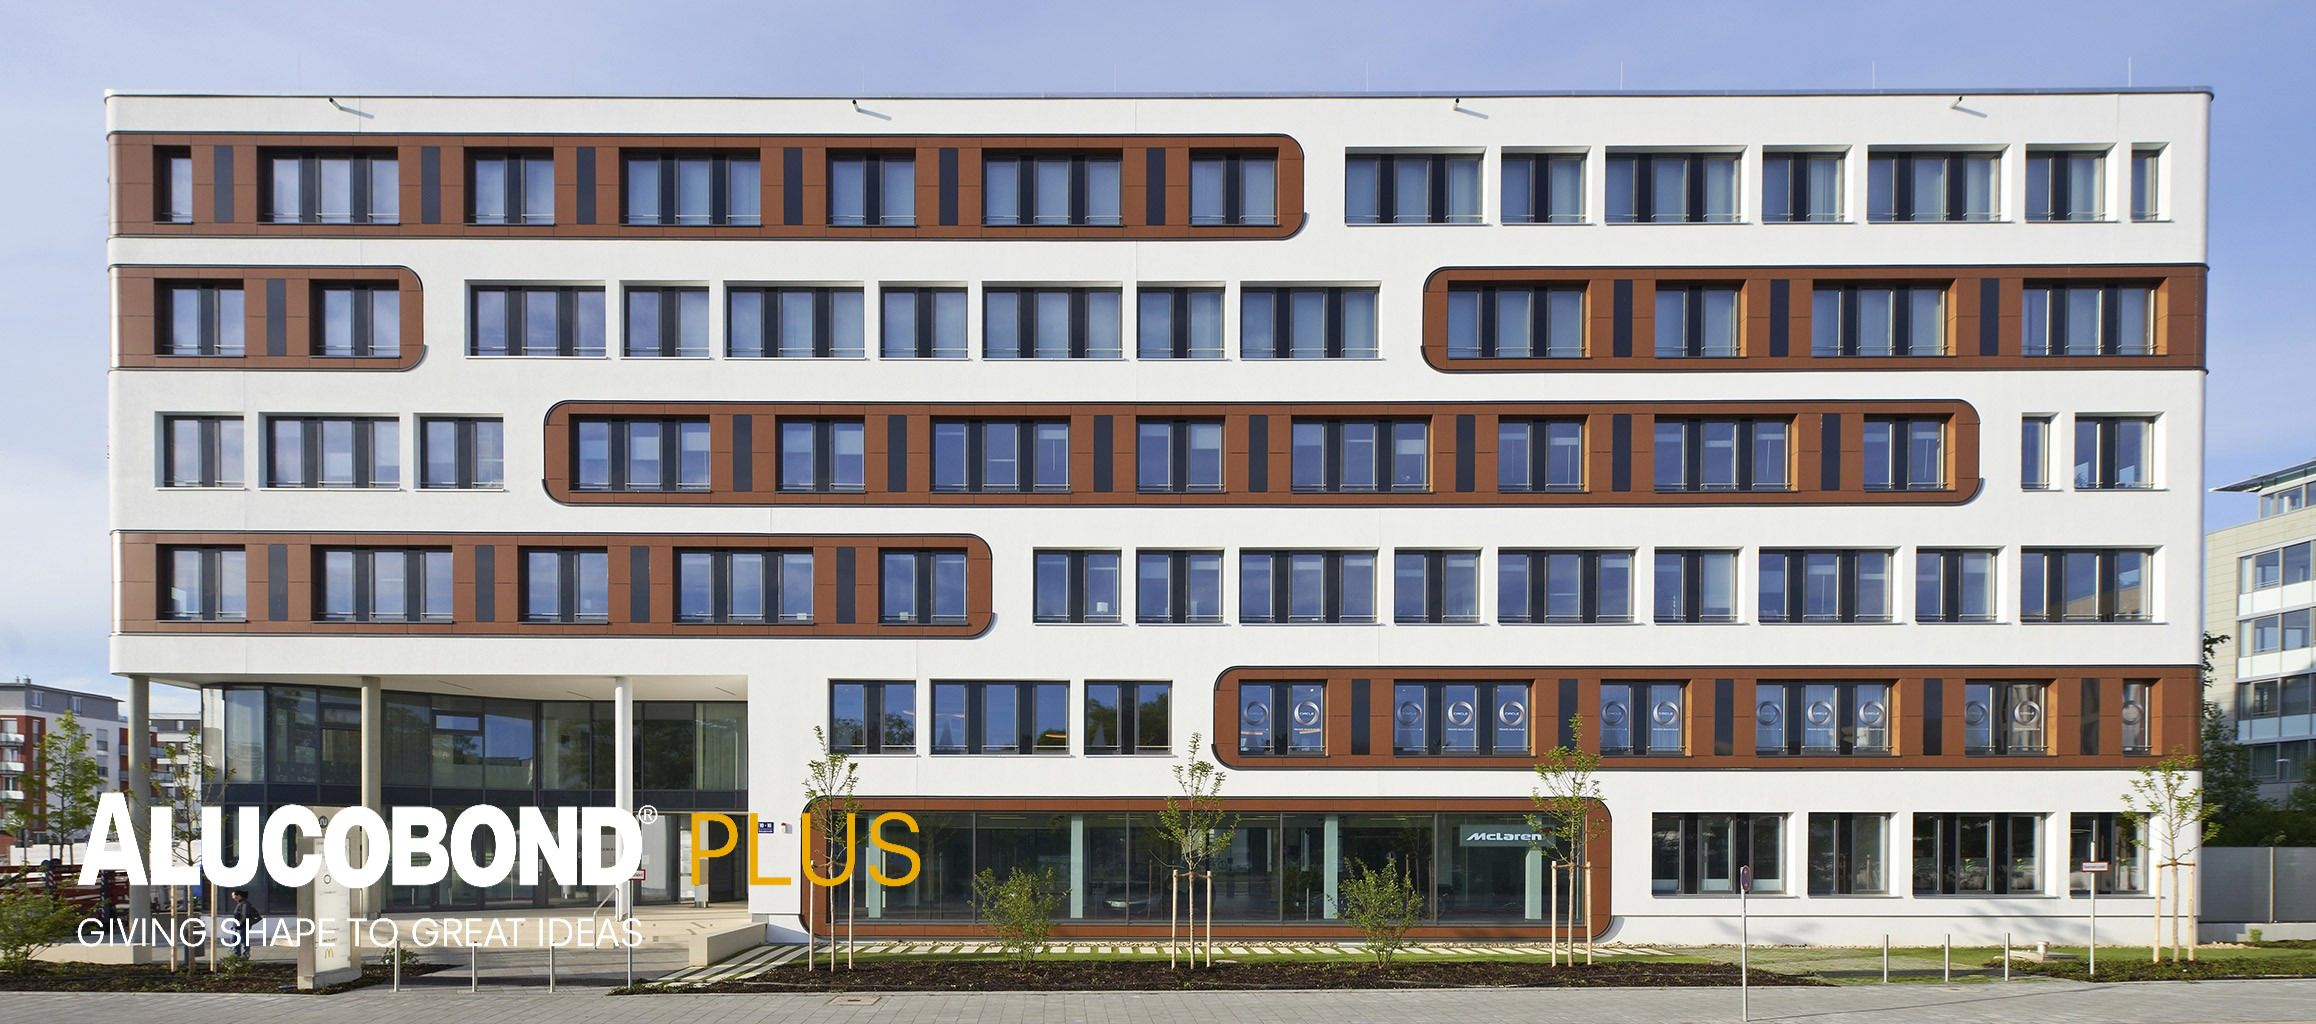 Pin On Sustainable Architecture Alucobond